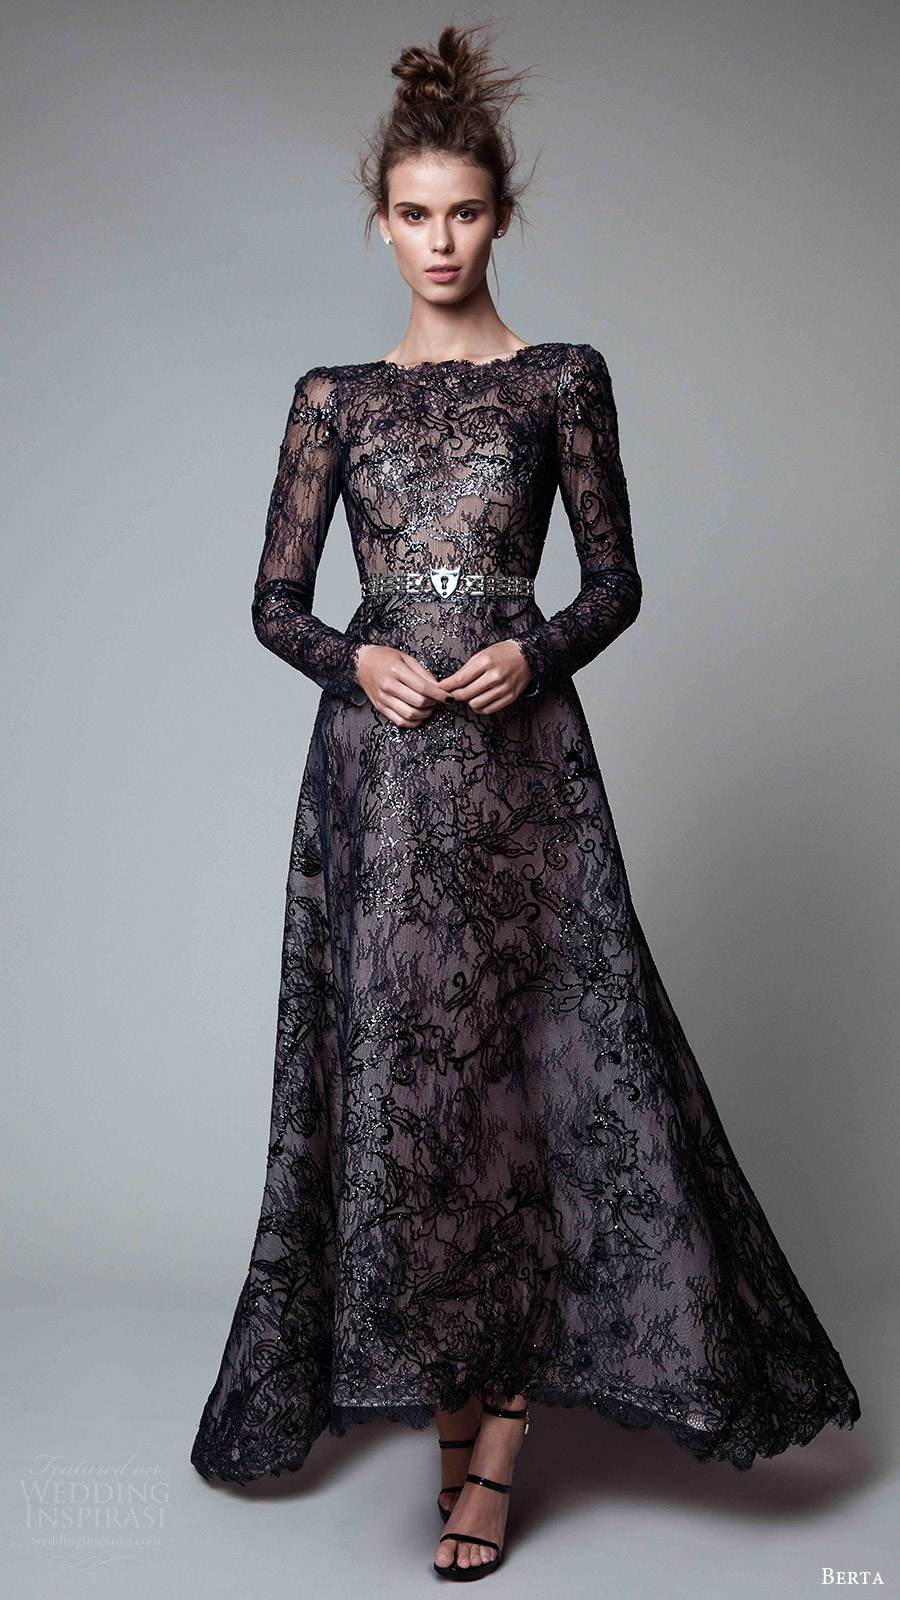 berta rtw fall 2017 (17 20) long sleeves jewel neck a line embellished evening dress black mv